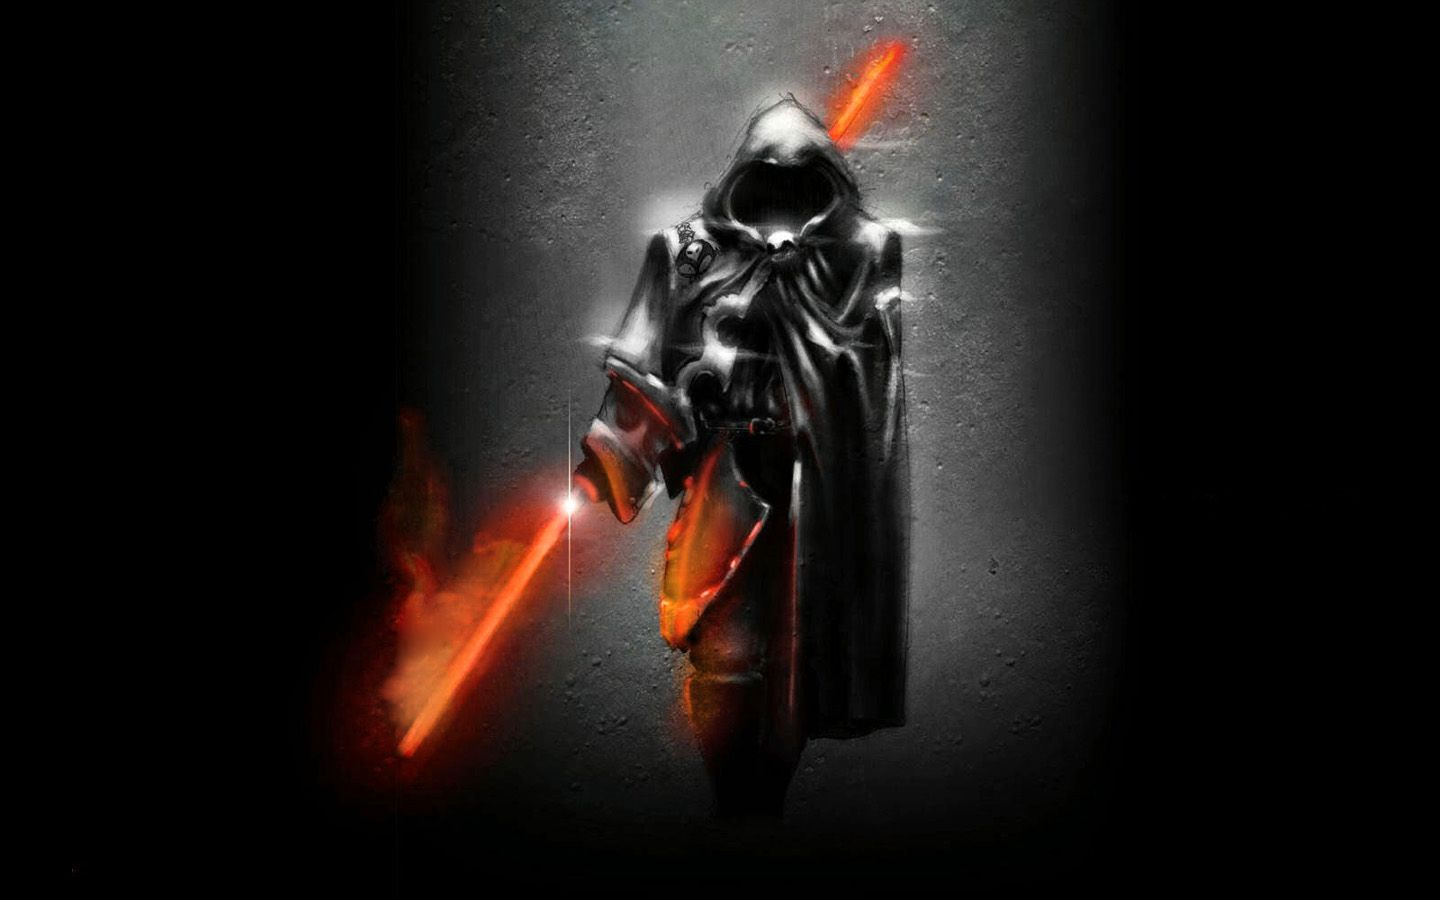 Star wars fond d 39 cran star wars empire sith gratuit - Star wars gratuit ...